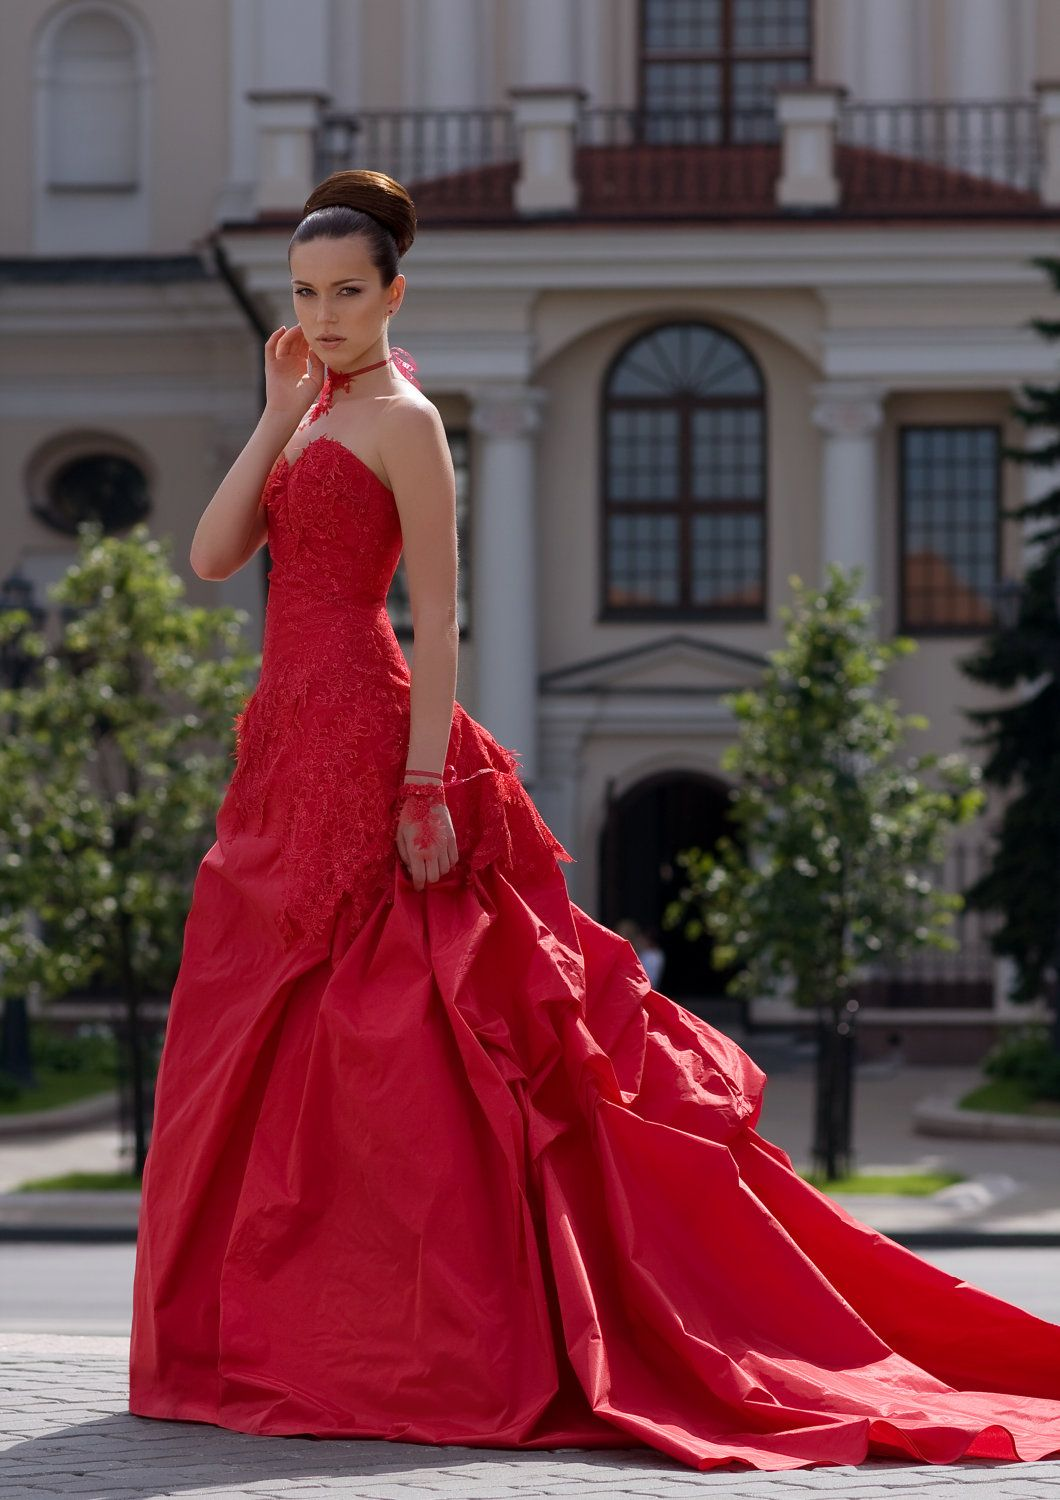 Vera wang red wedding dress  Fascinate red wedding dress with lace and by EdelweissBride